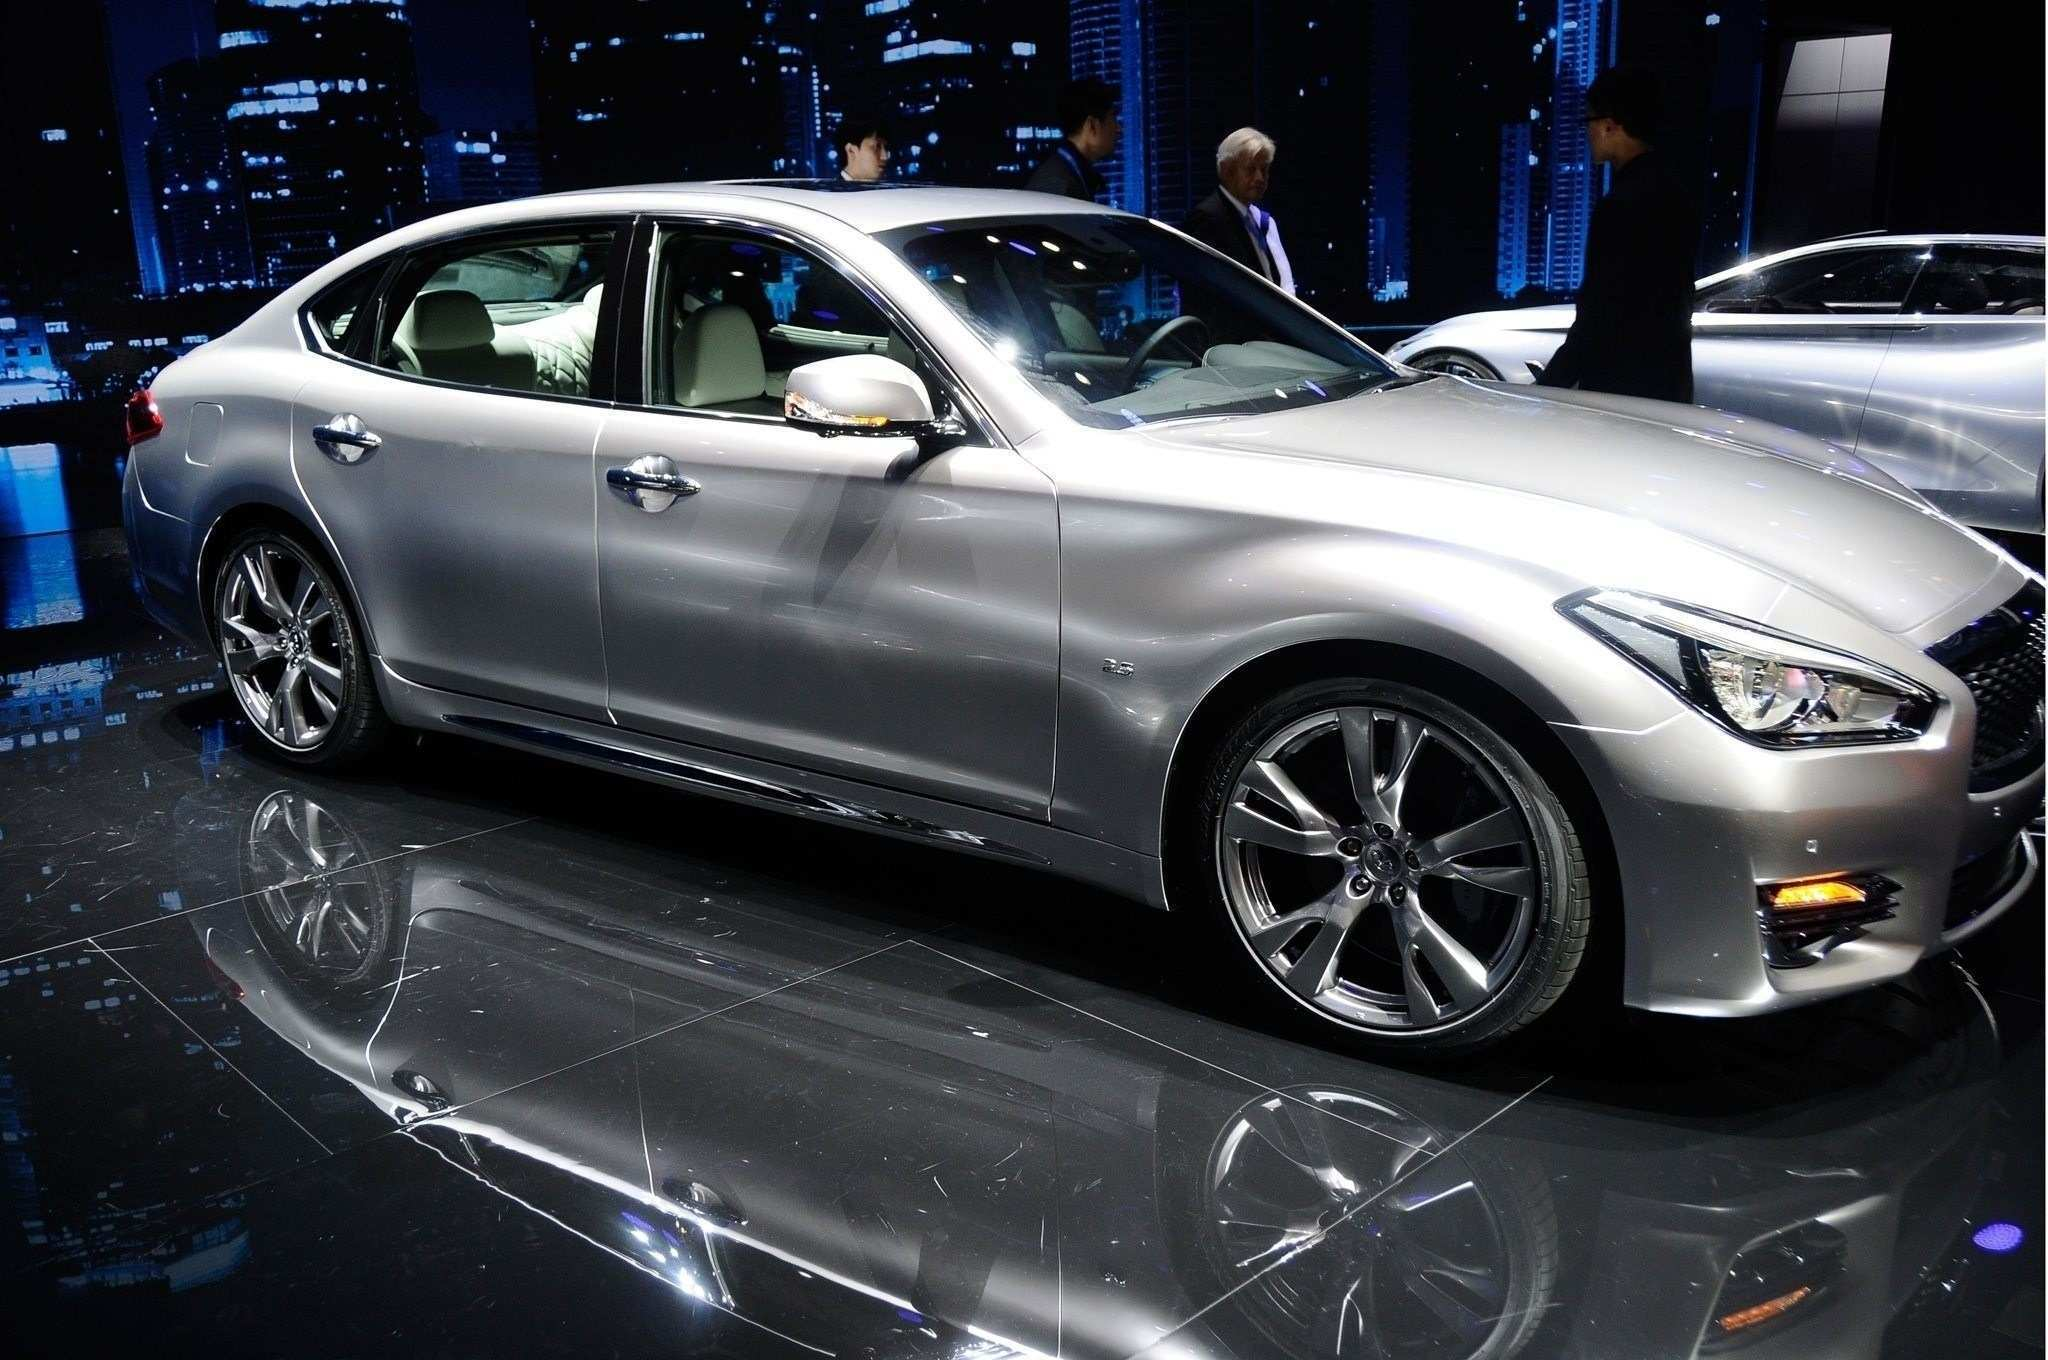 76 Best Review 2019 Infiniti Q70 Review Overview by 2019 Infiniti Q70 Review